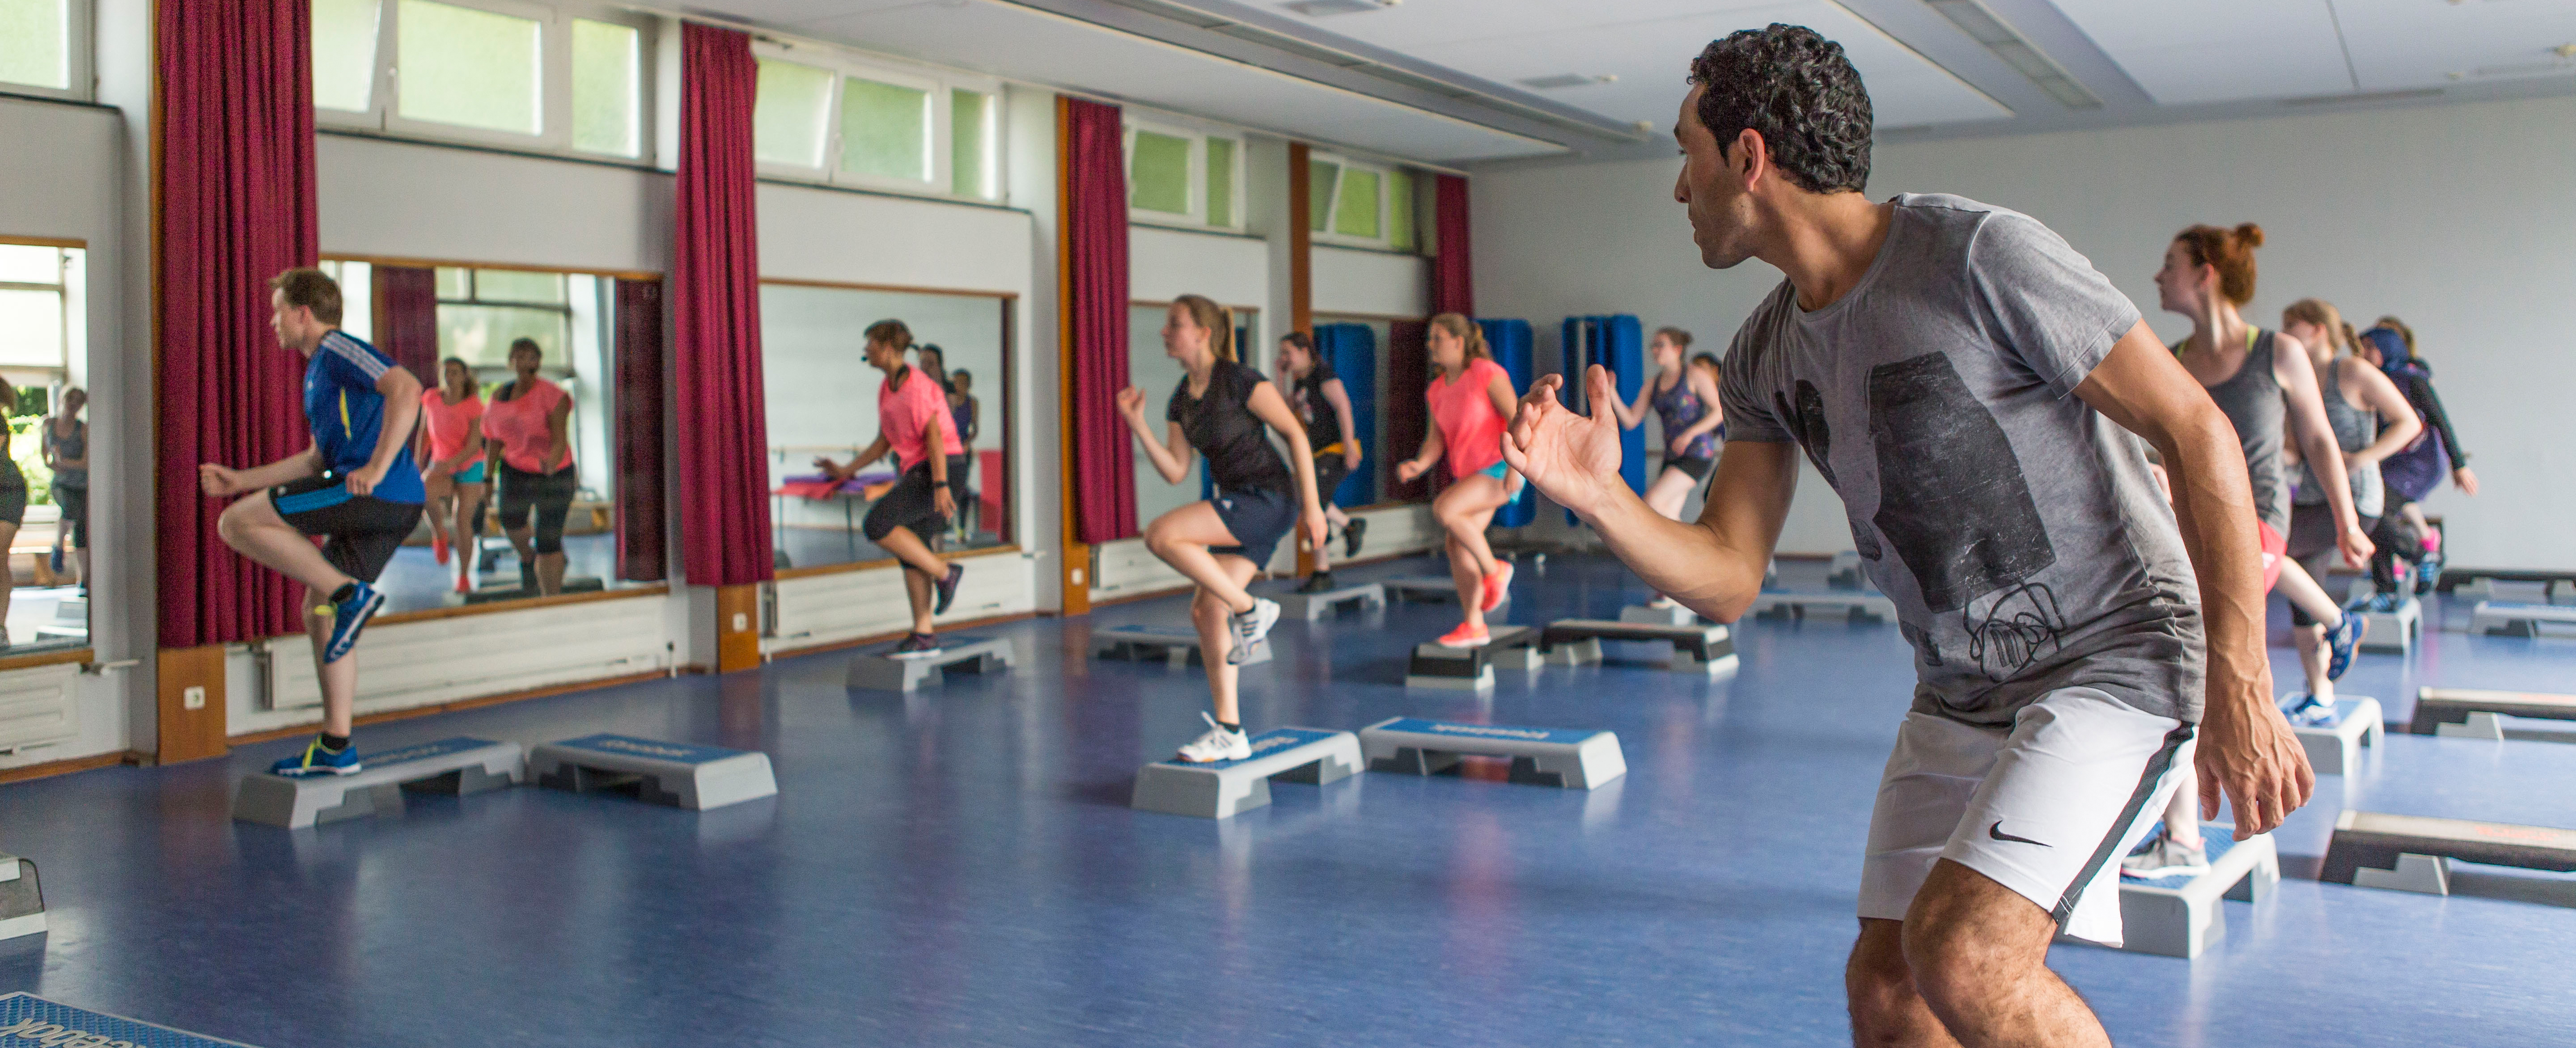 Participants in an aerobic course